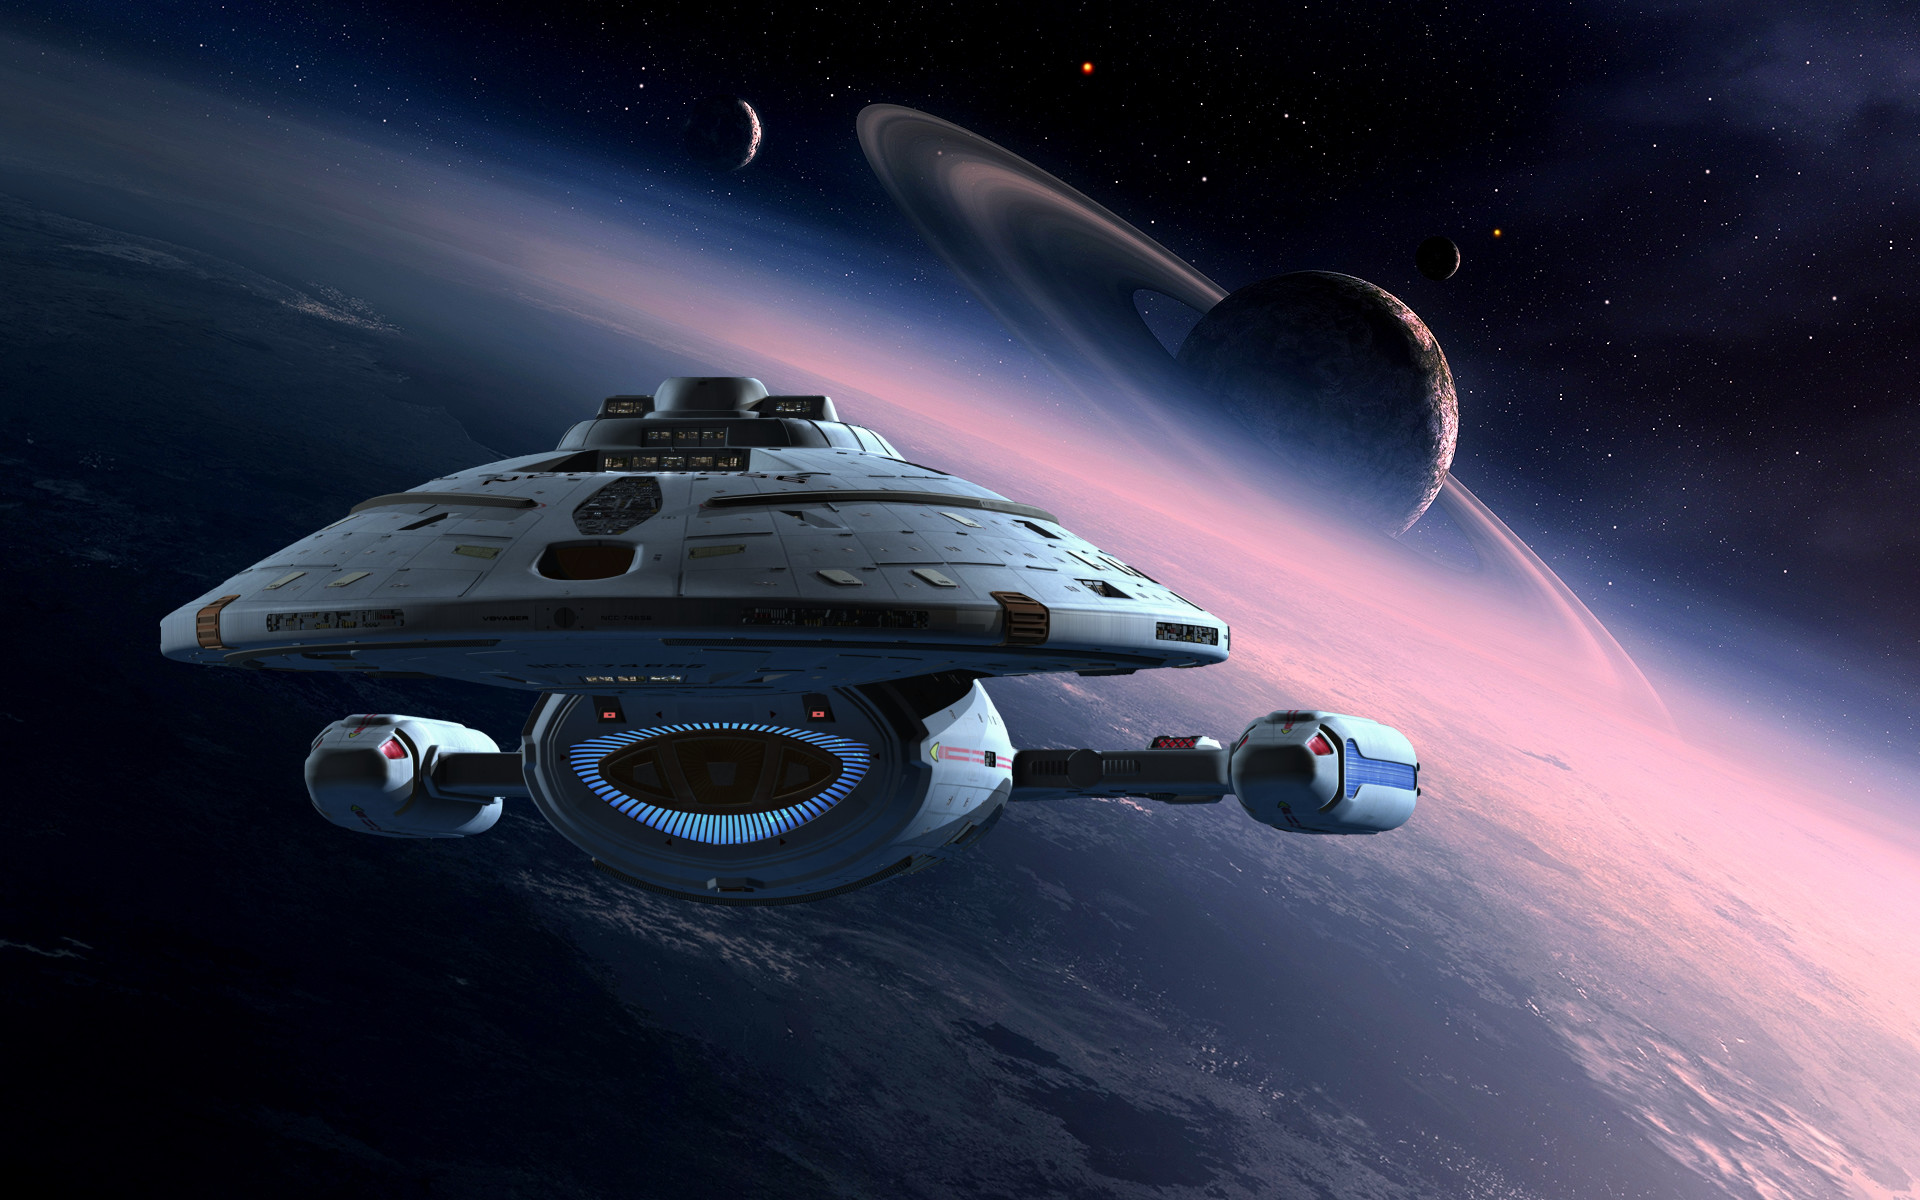 1920x1200 ... Favorite Star Trek Photos, Pictures | Star Trek HDQ Wallpapers ...